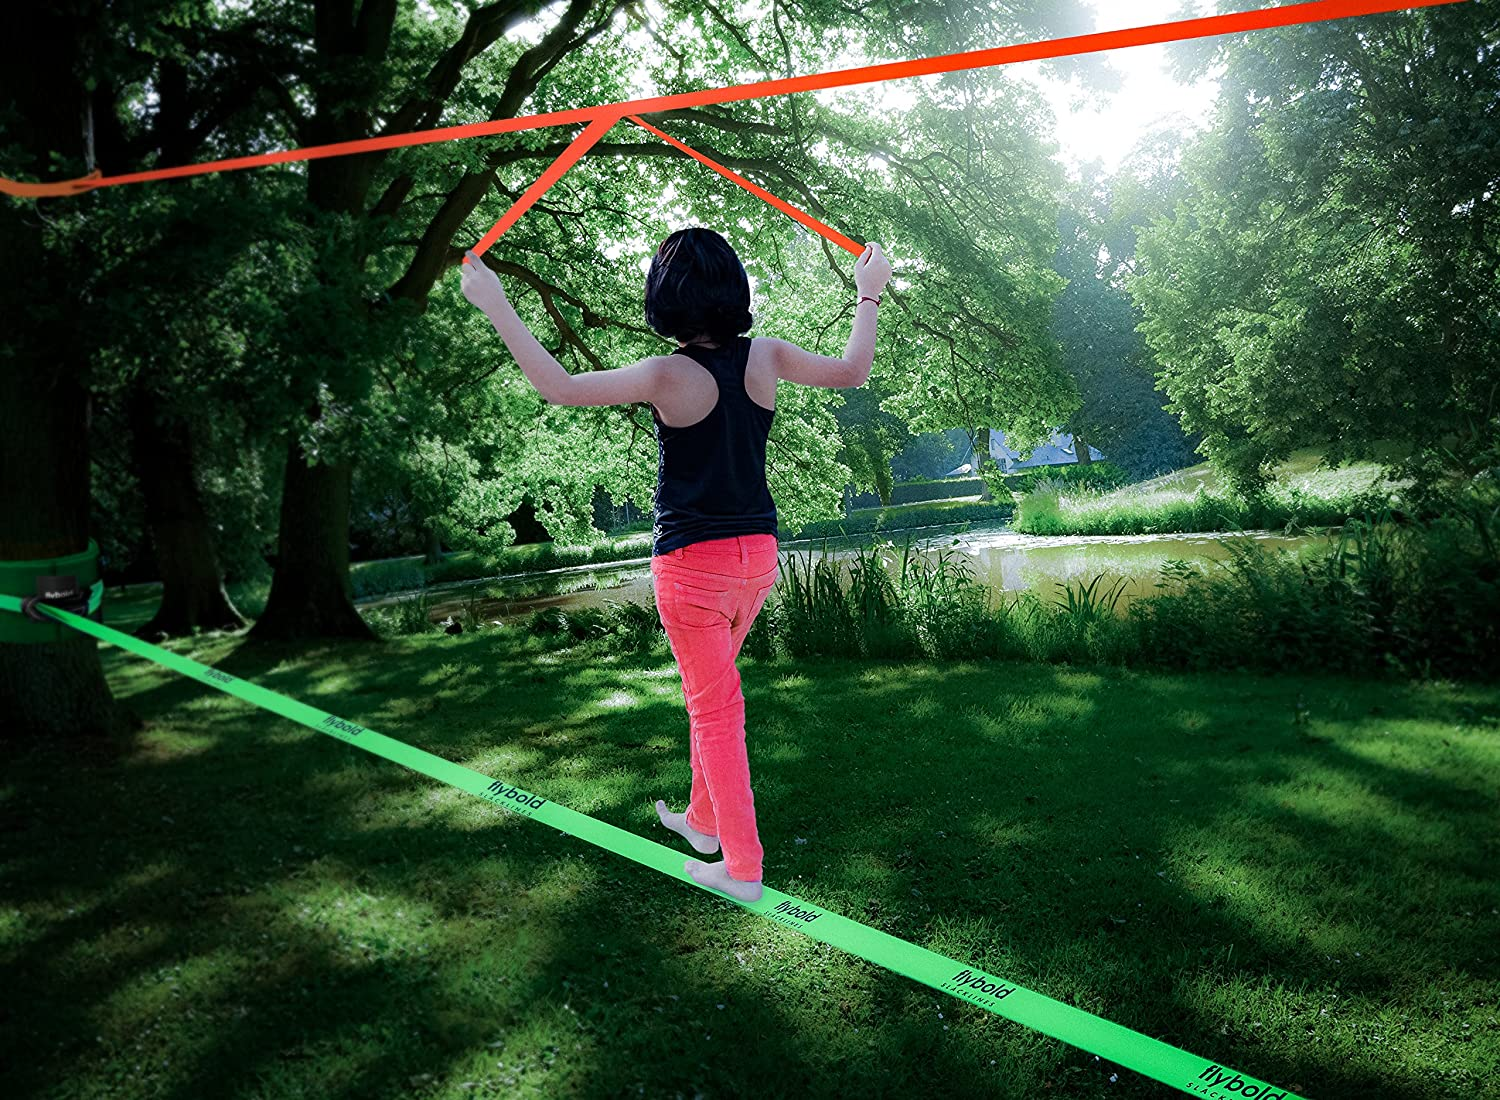 Slackline Kit with Training Line Tree Protectors